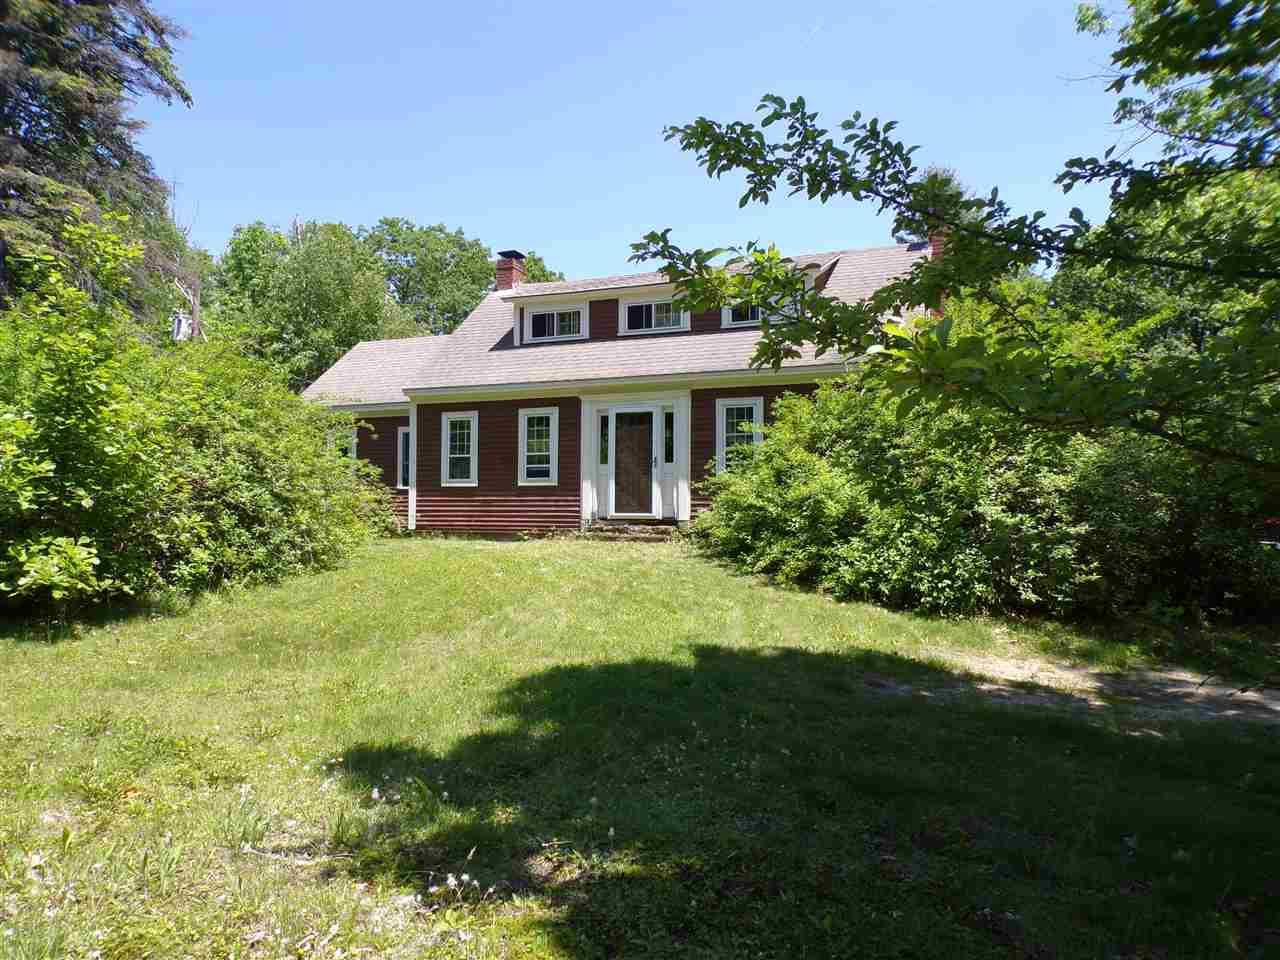 96 Fish Rd Temple Nh Mls 4640684 Better Homes And